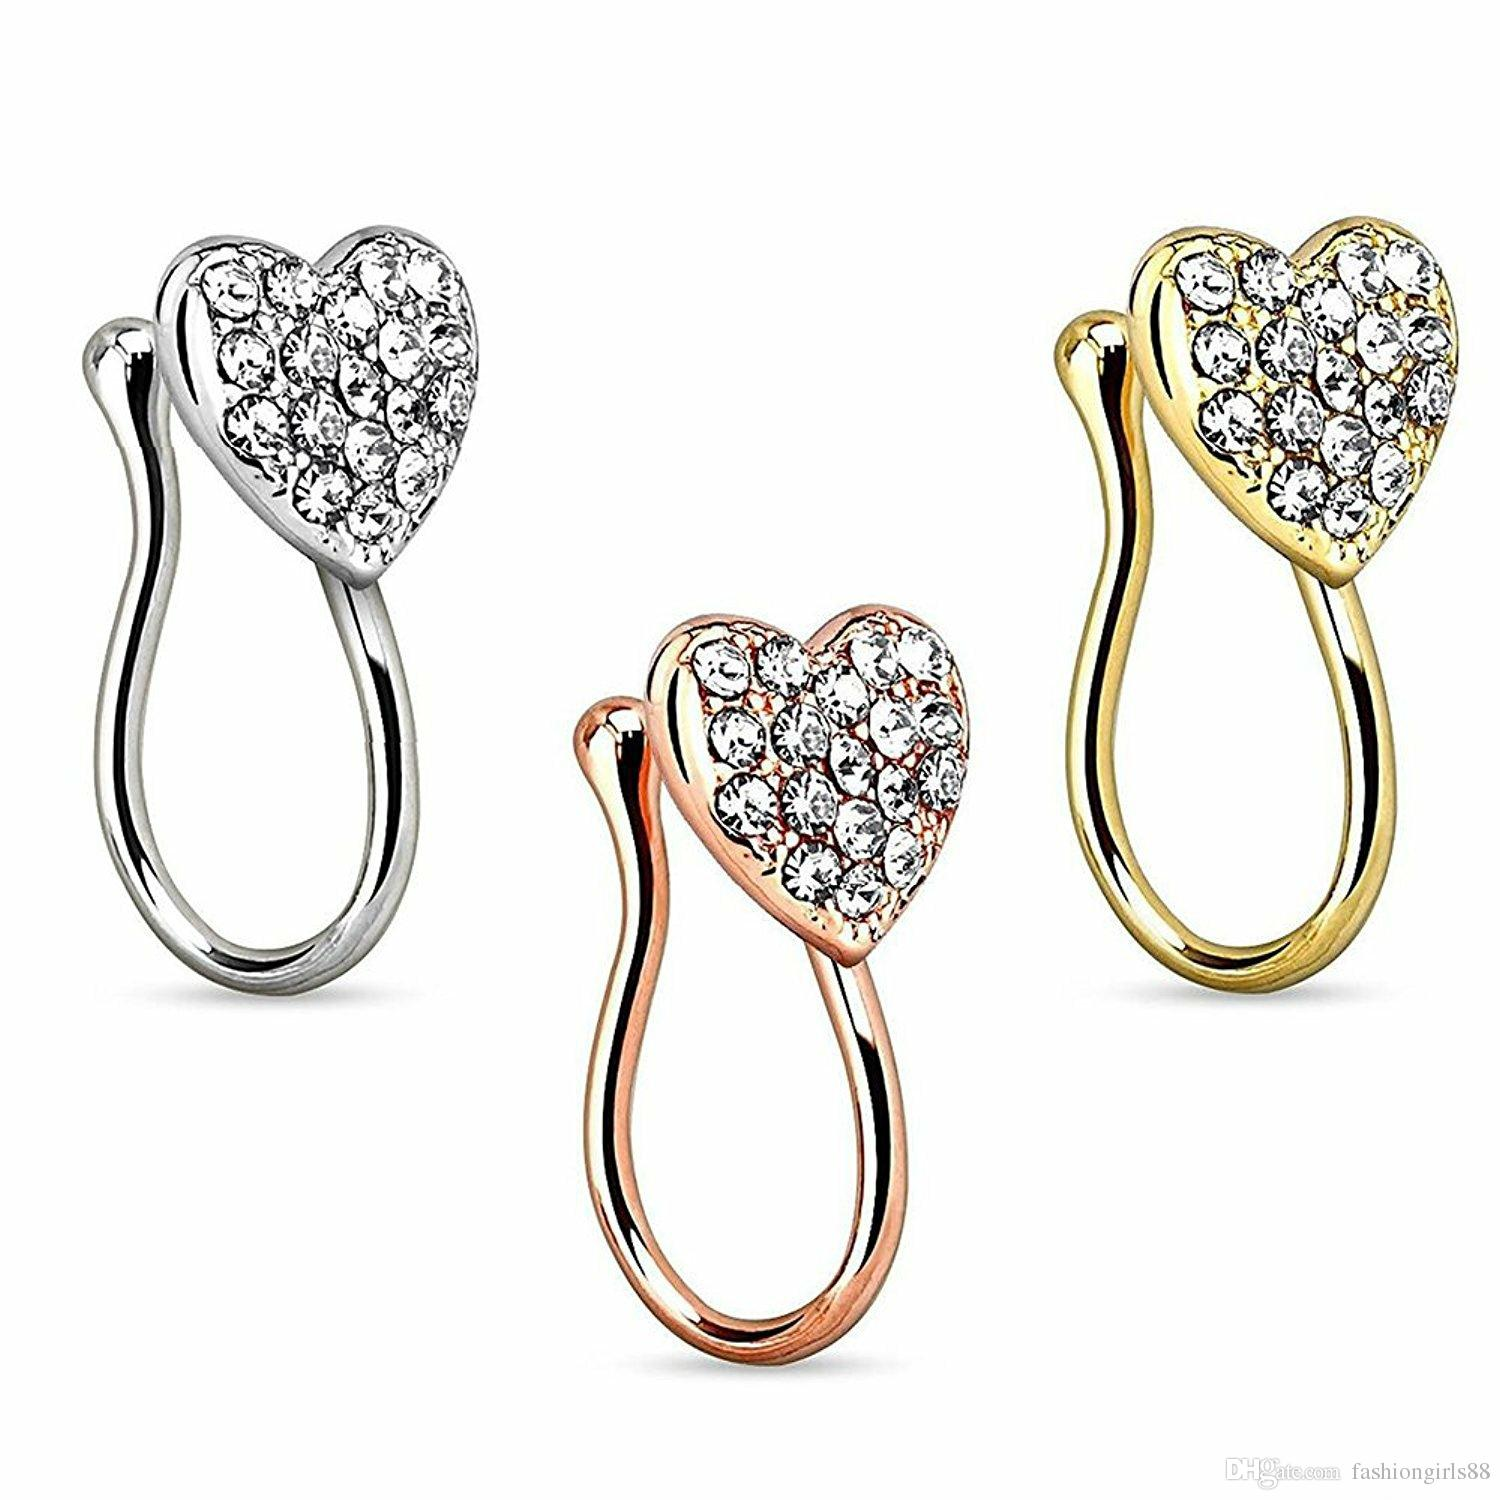 Trendy Crystal Hearts Nose Nail Stainless Steel Clip-On Nose Rings Golden Silver Rose Gold Nose Clip Puncture Accessories Body Piercing Set